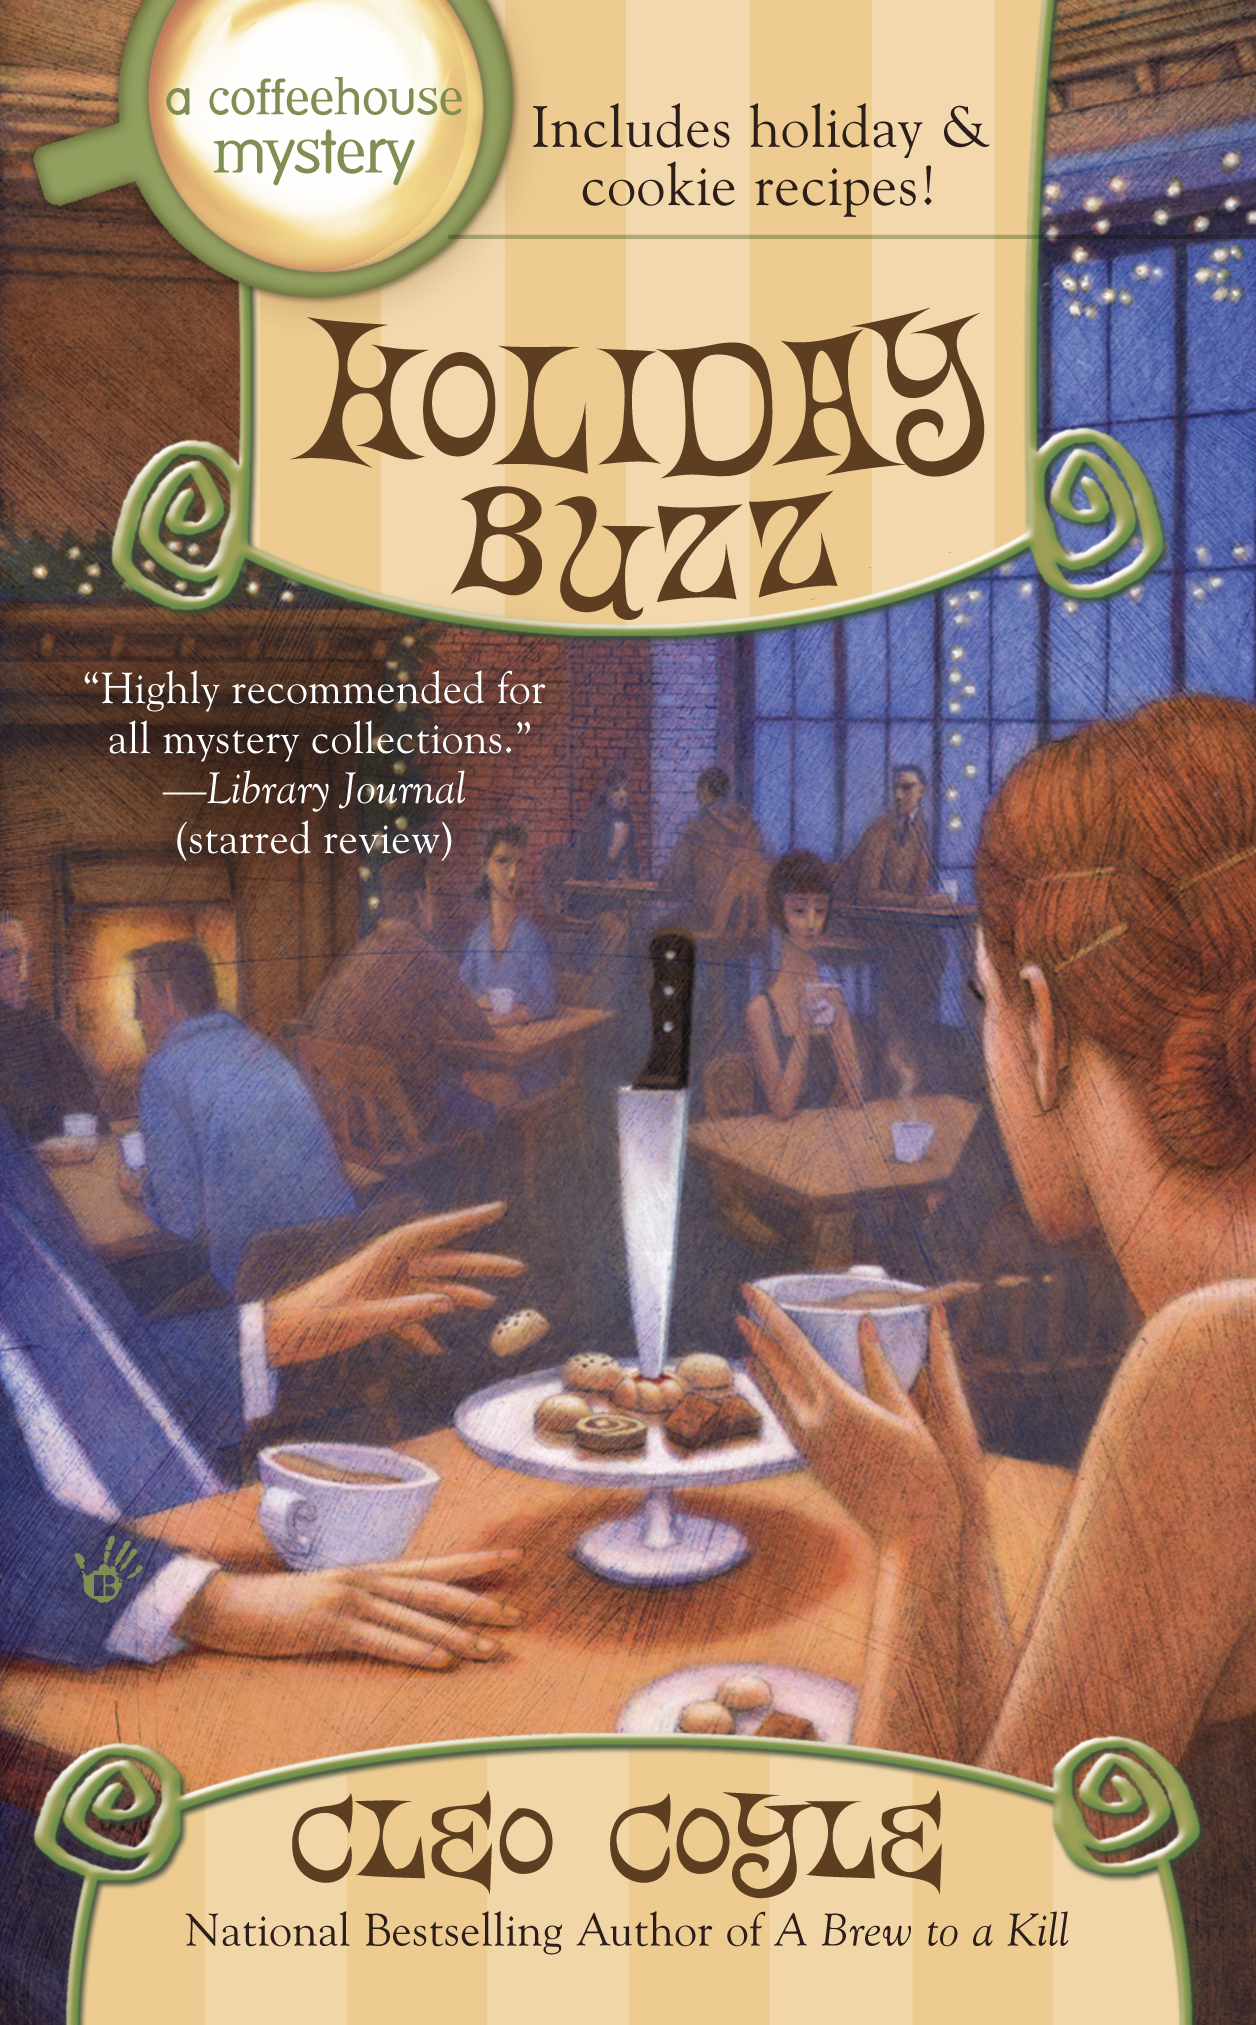 About the Coffeehouse Mystery Books | CoffeeHouseMystery com